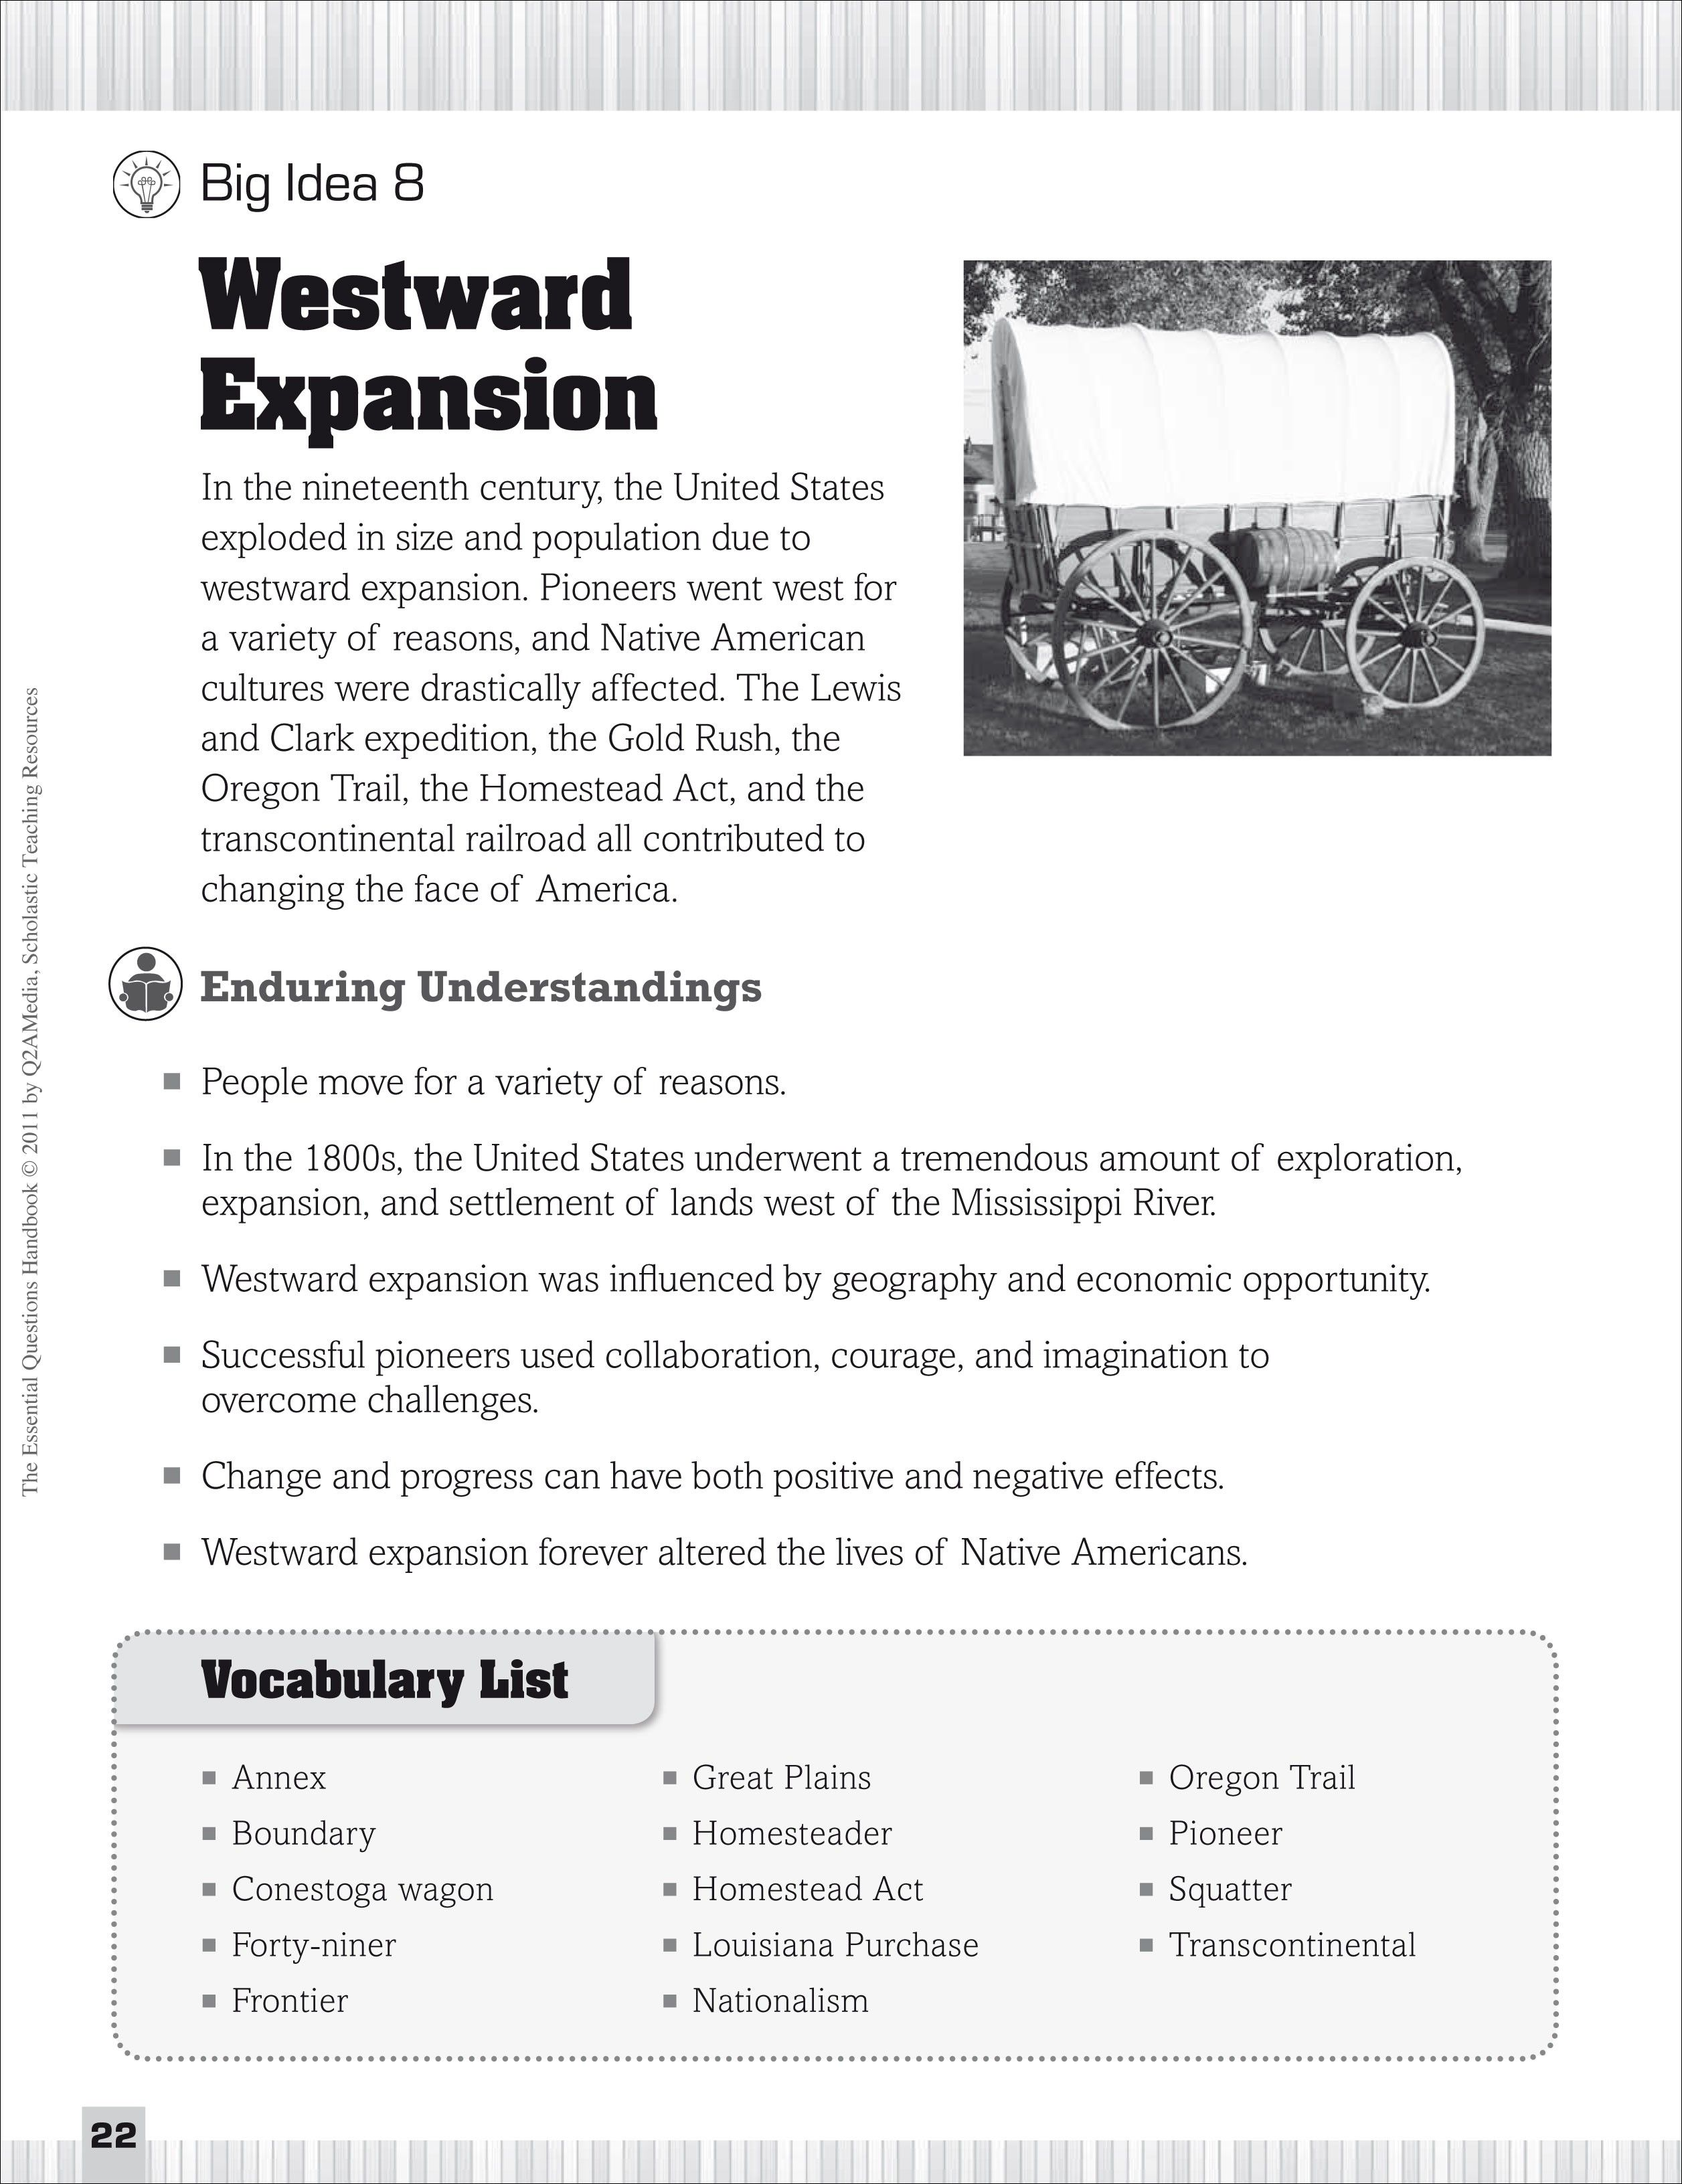 Printables Westward Expansion Worksheet Messygracebook